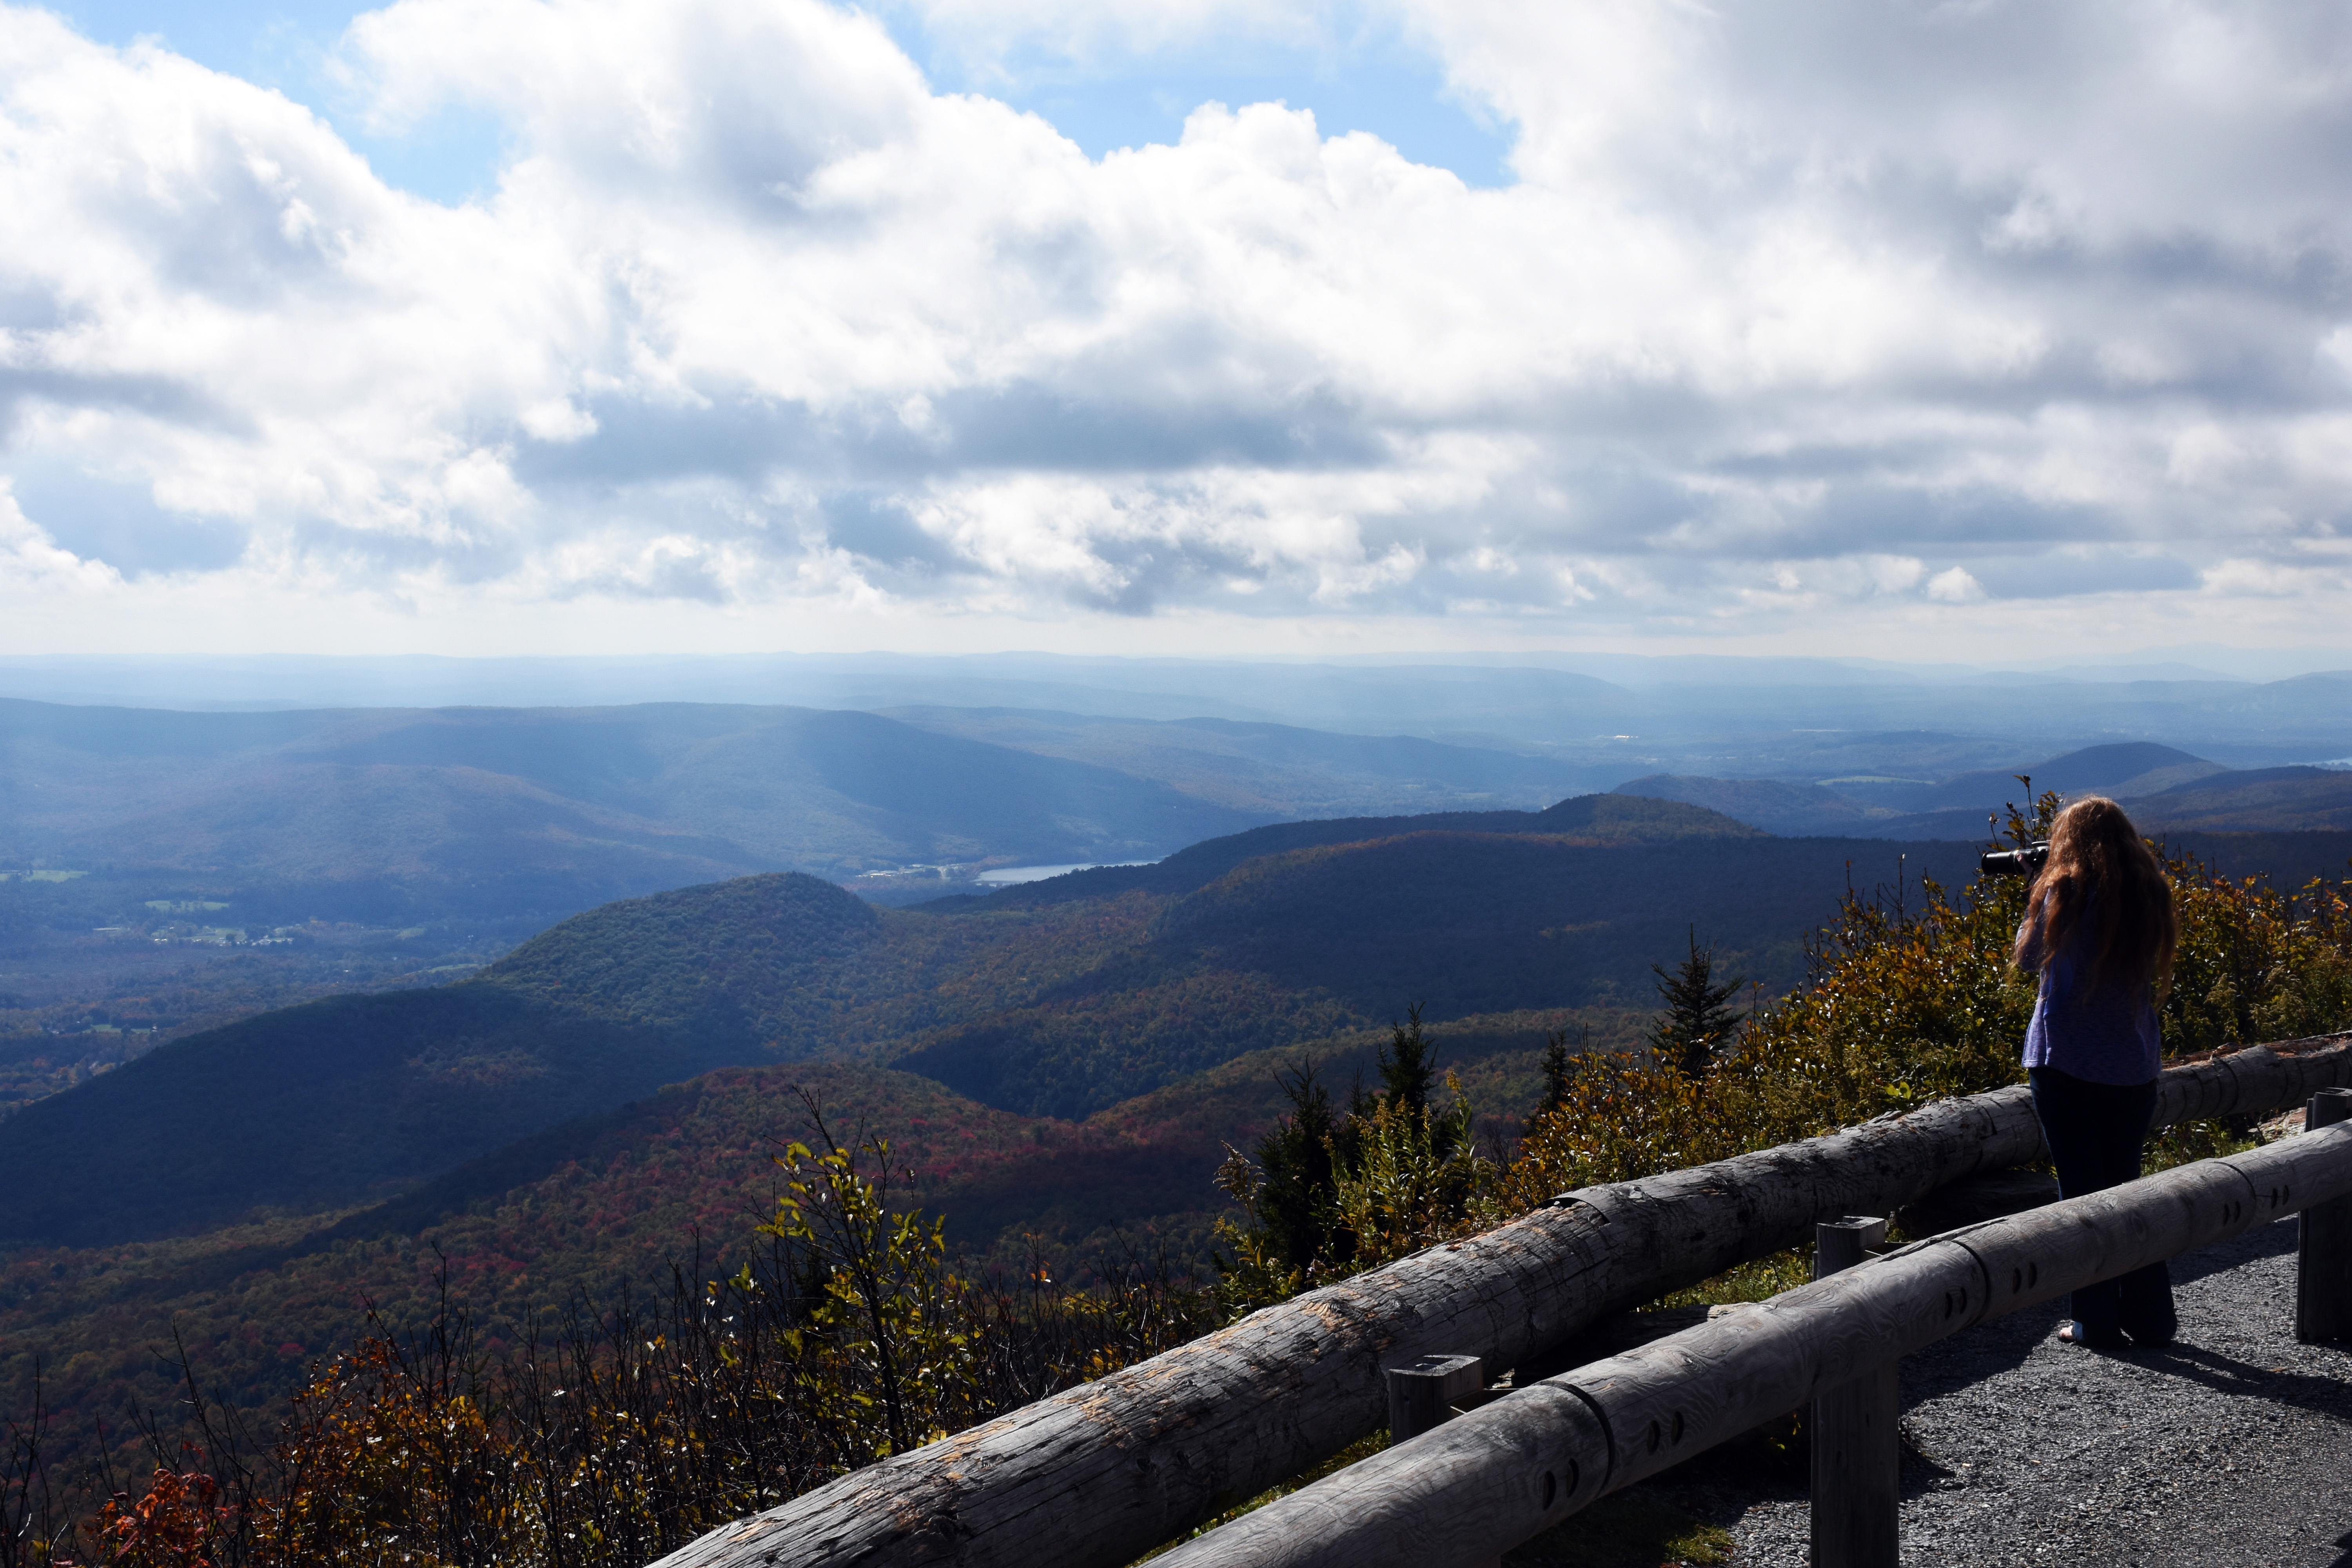 Cheshire, MA, from Mt. Greylock. (photo by D. Speredelozzi)